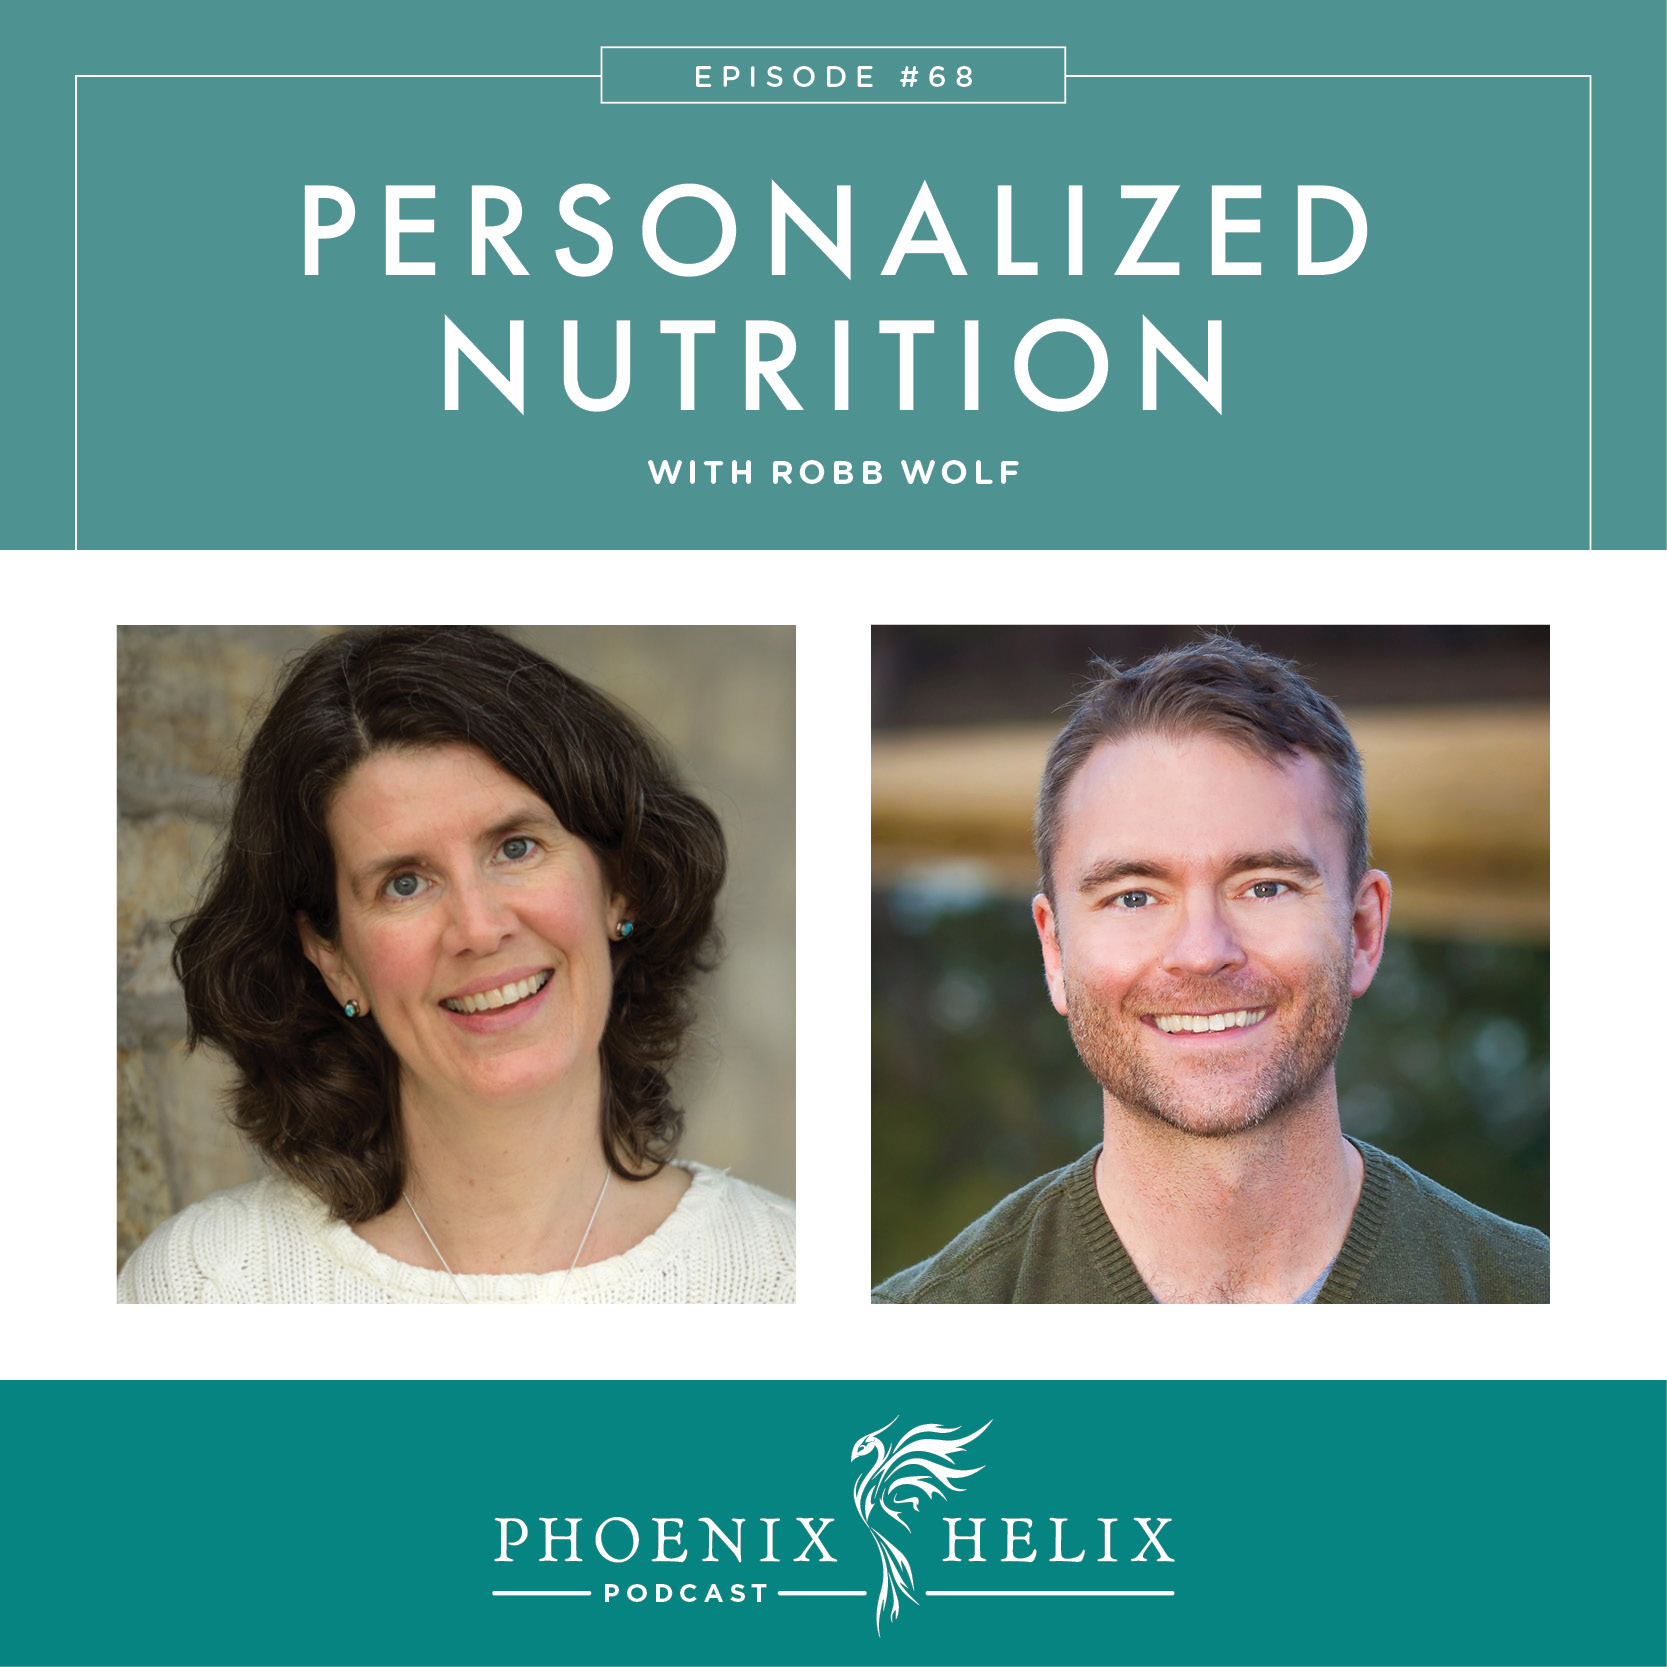 Personalized Nutrition with Robb Wolf | Phoenix Helix Podcast